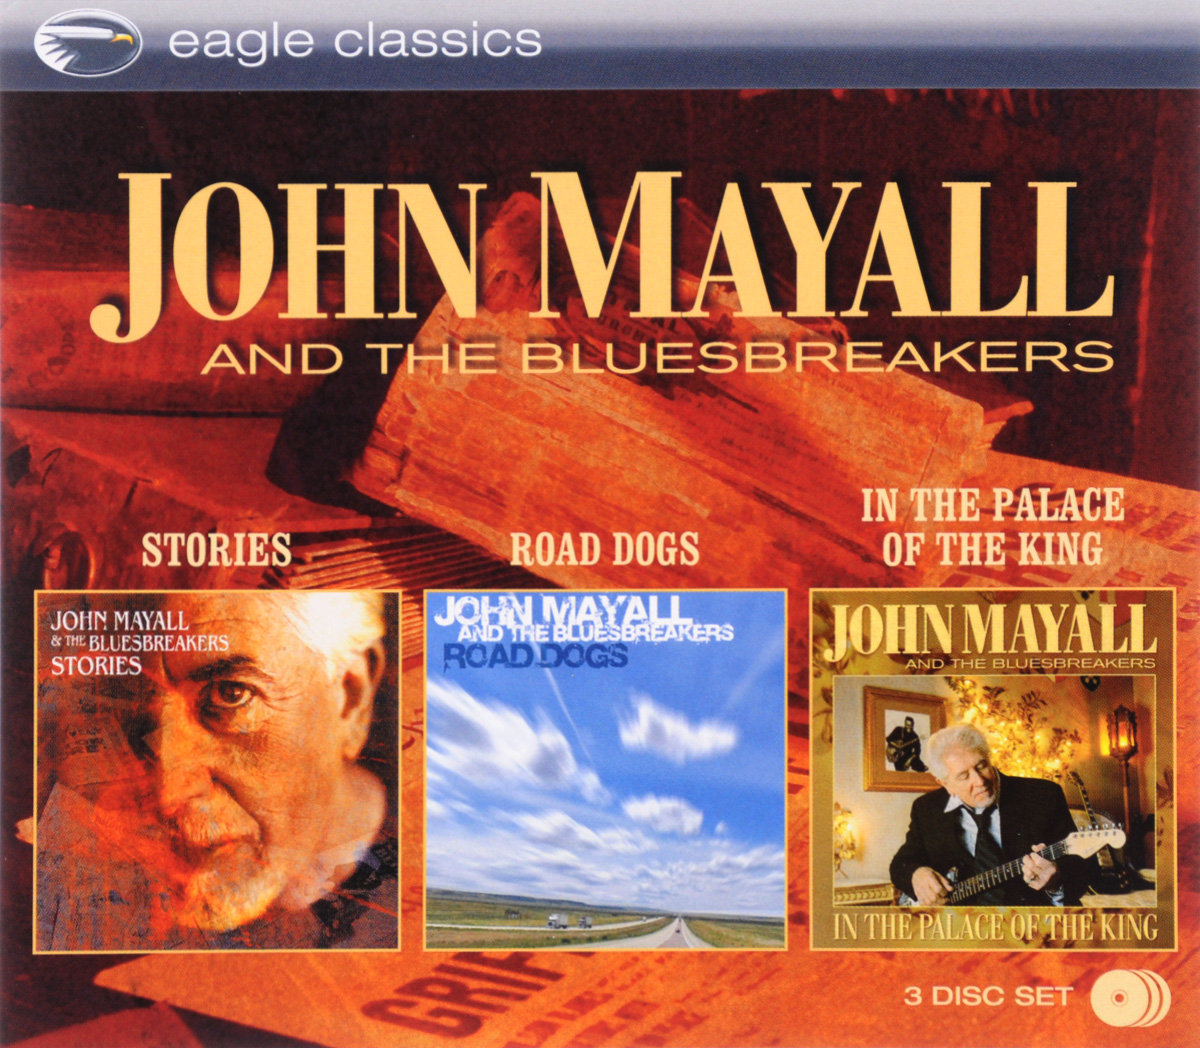 Джон Мэйолл,The Bluesbreakers John Mayall & The Bluesbreakers. Stories / Road Dogs / In The Palace Of The King (3 CD) велосипед wheeler eagle ltd 2013